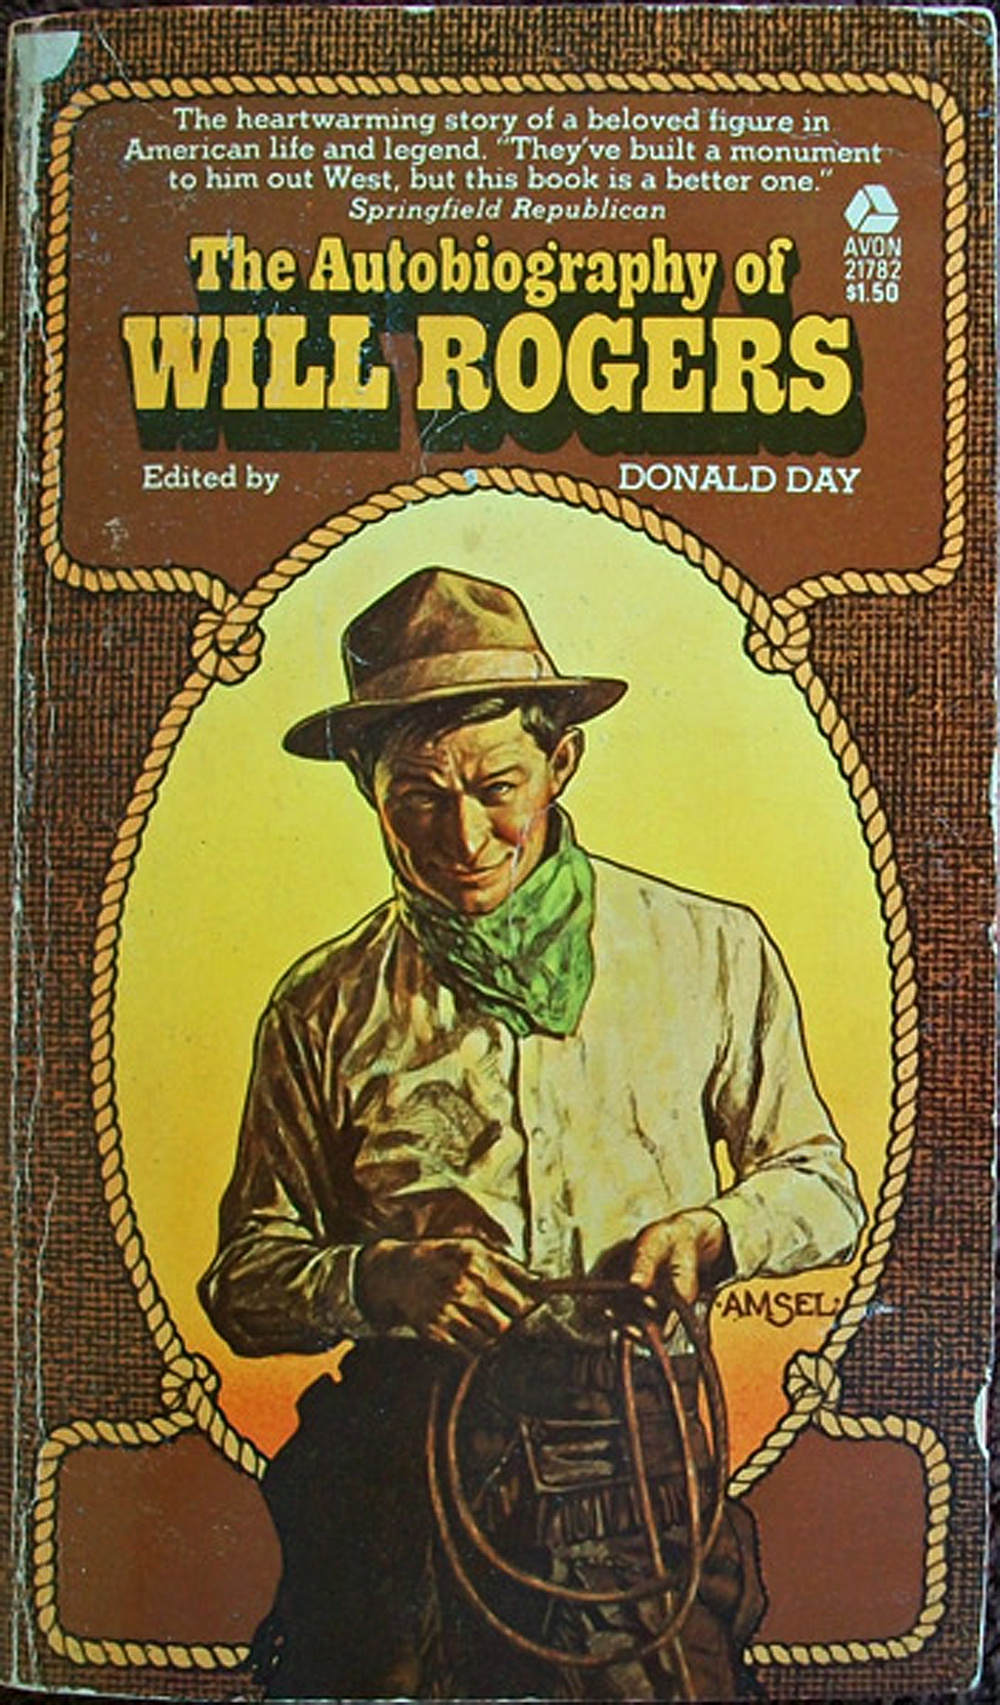 a biography of the life and times of will rogers Complete summary of ben yagoda's will rogers enotes plot summaries cover all will rogers: a biography summary devoting most of his time to developing his.